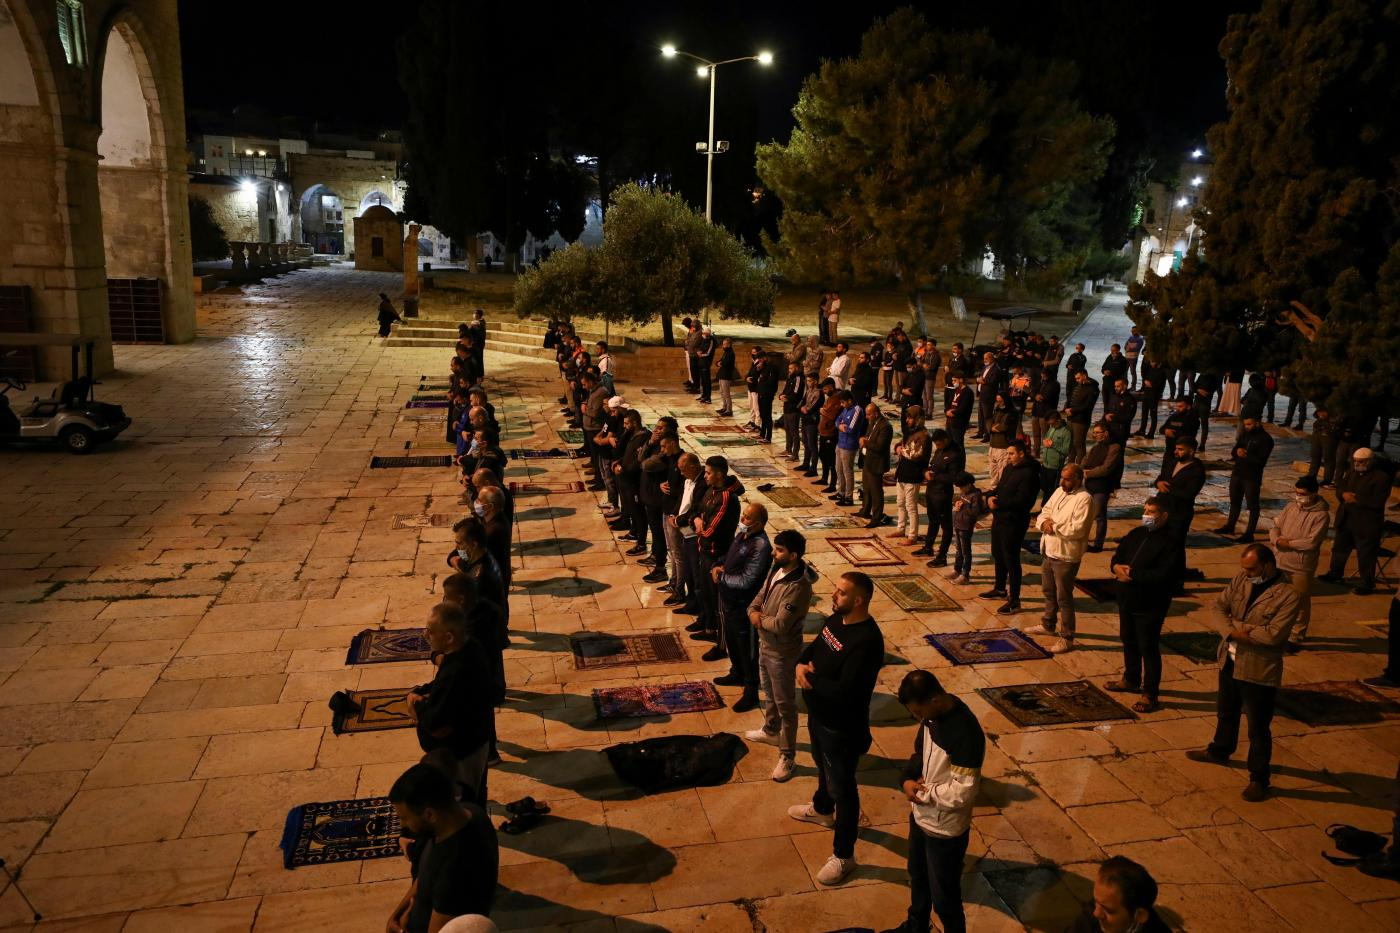 Coronavirus: Thousands Pray at Al-Aqsa After More Than Two Months